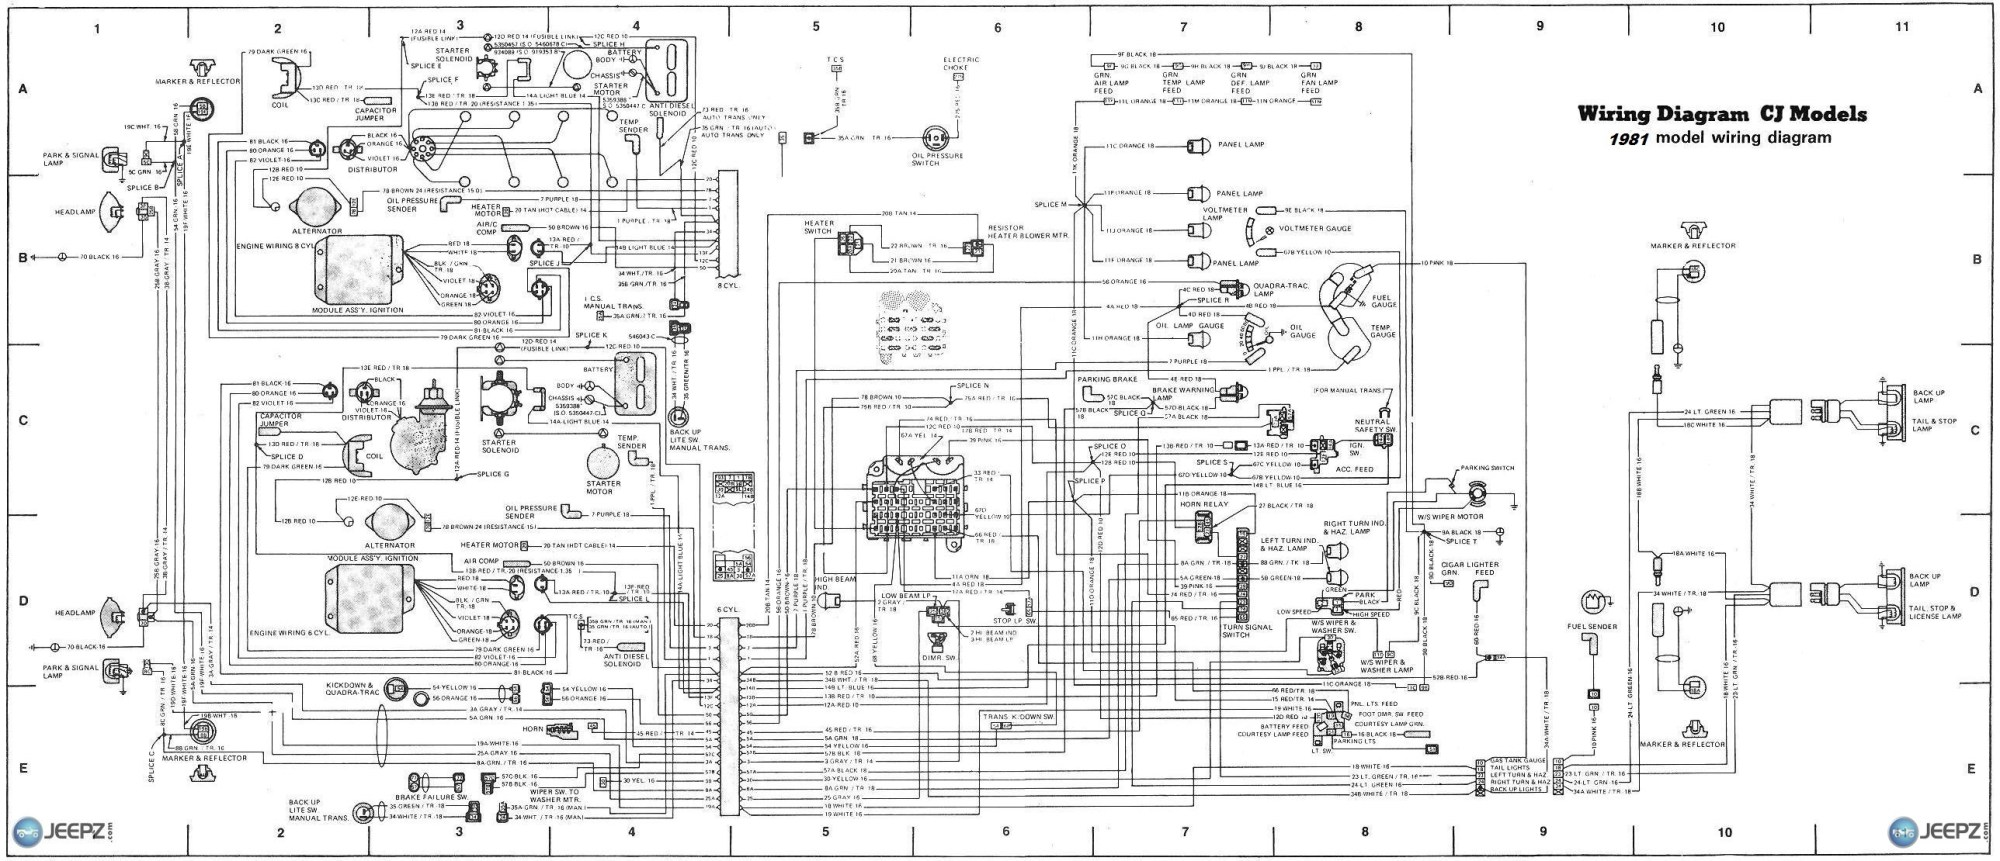 hight resolution of 1980 jeep cj7 wiring diagram auto electrical wiring diagram 77 cj7 wiring diagram 1980 jeep